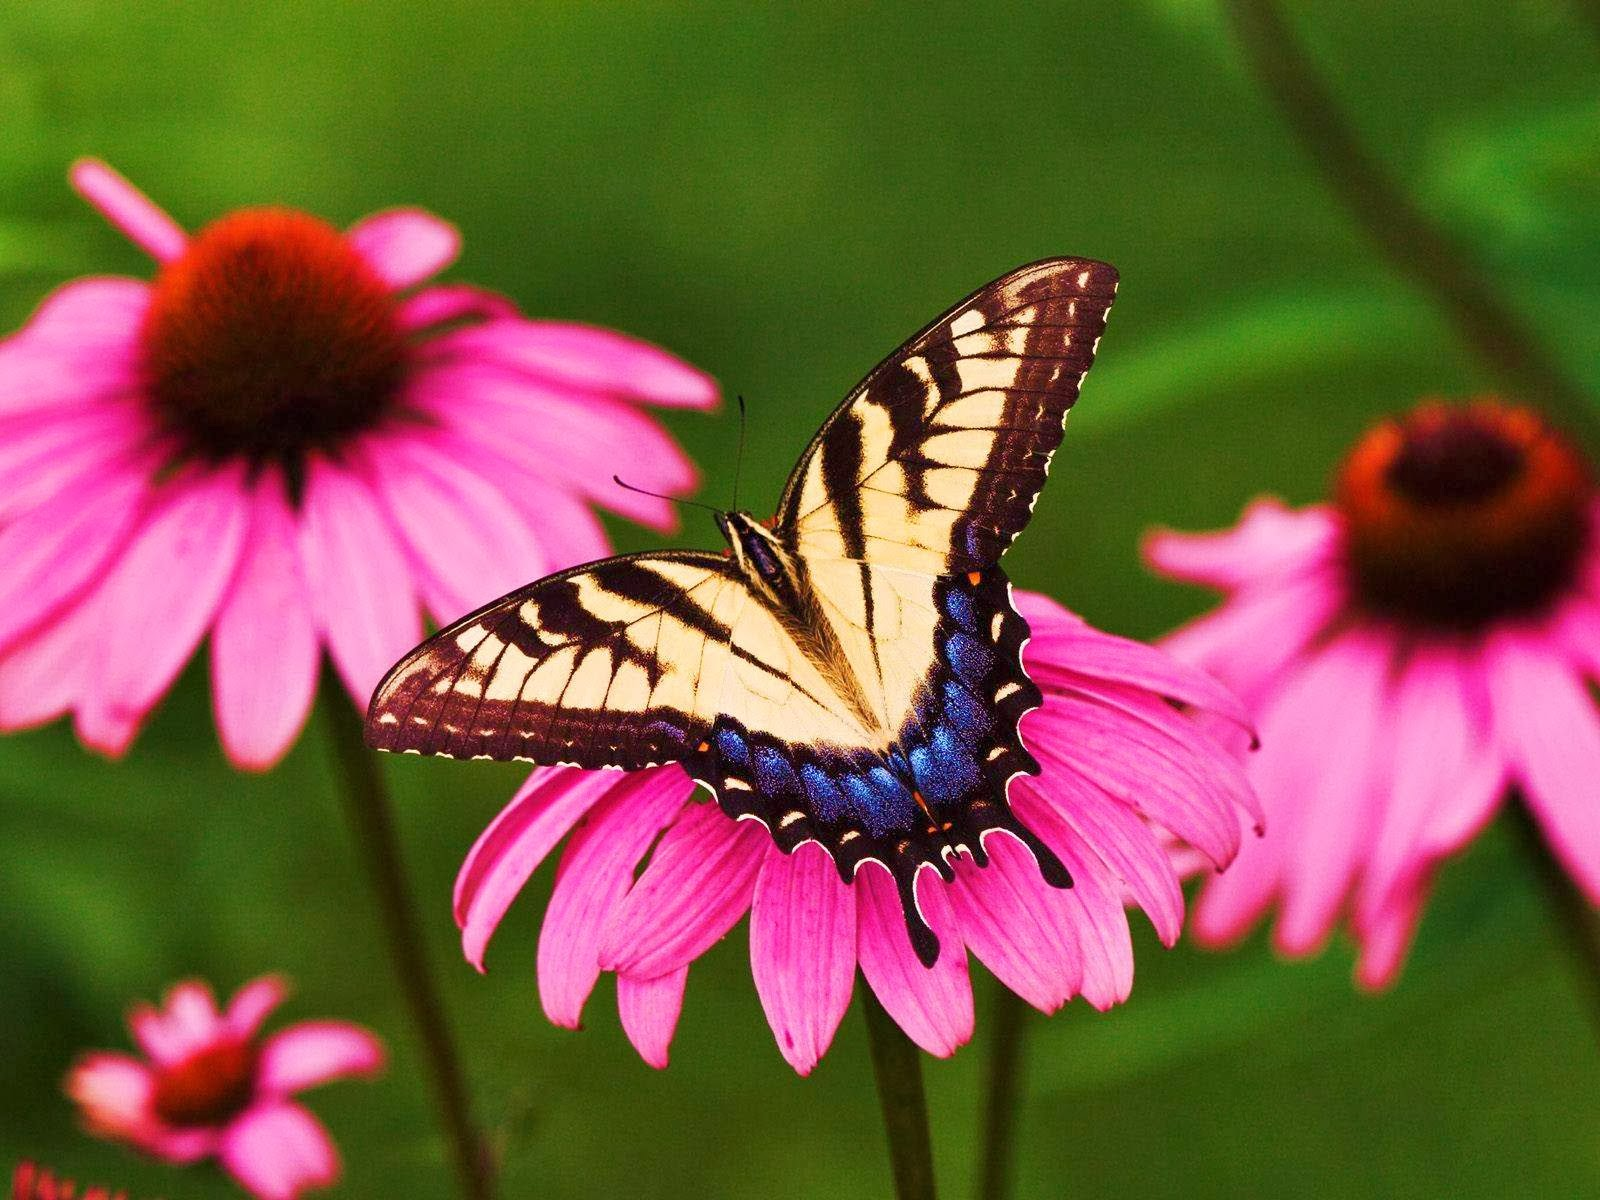 Symbiotic Relationship Of Butterfly And Flower